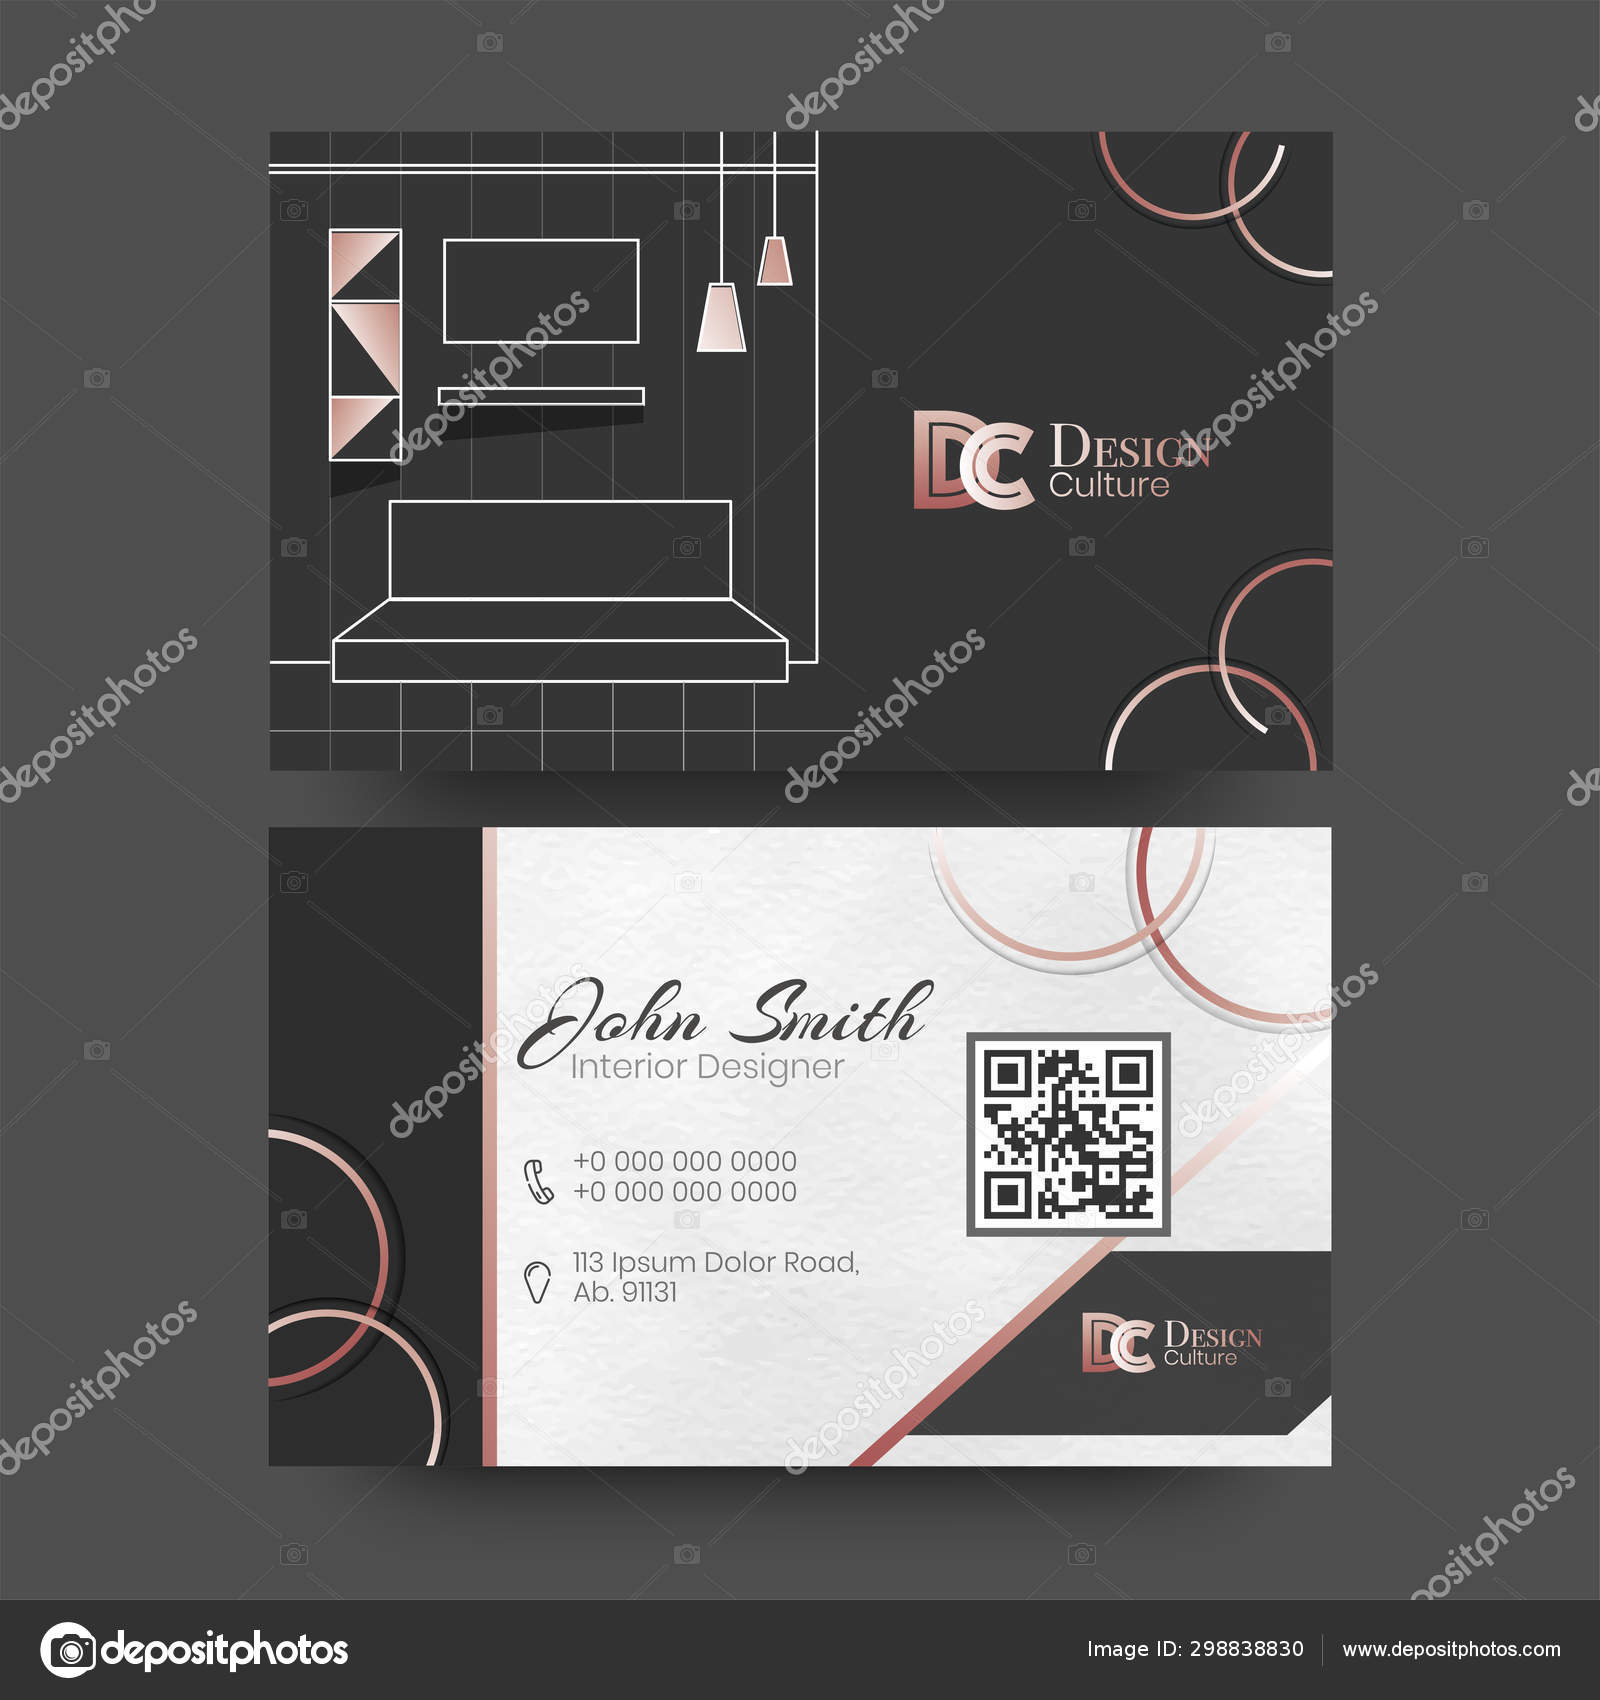 Front And Back View Of Business Card Or Visiting Card Design For Interior Designer Stock Vector C Alliesinteract 298838830